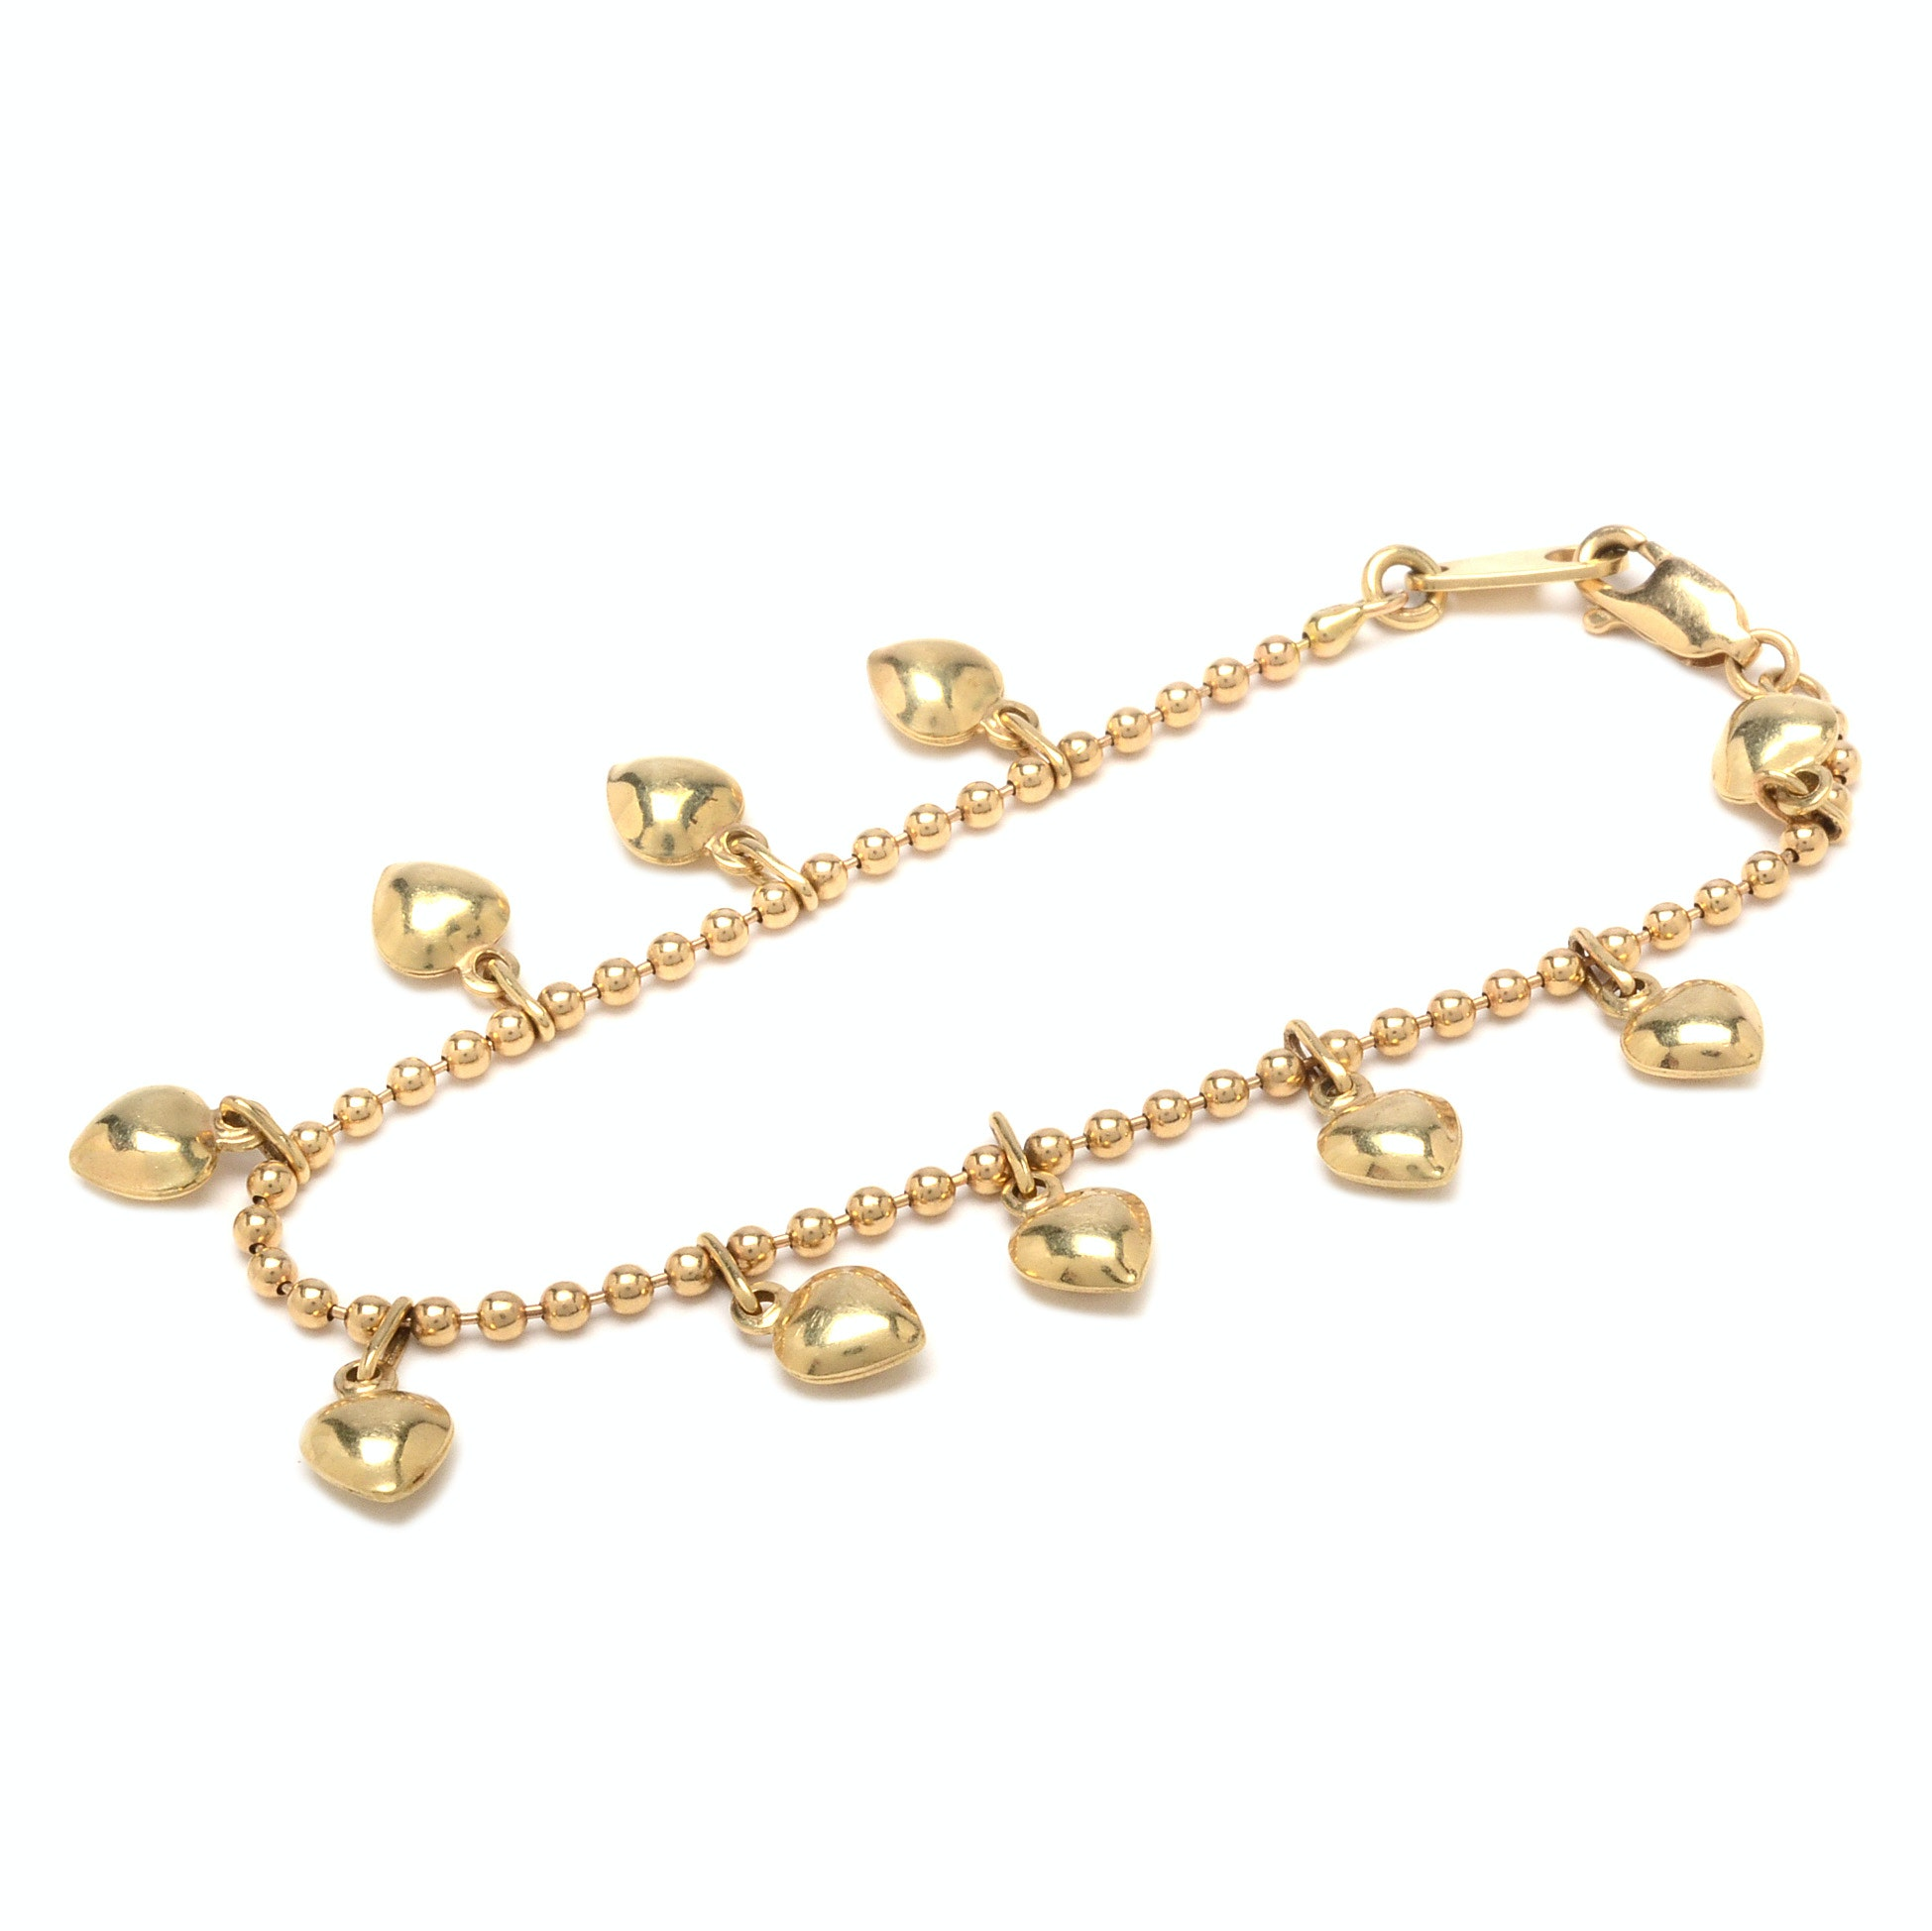 14K Yellow Gold Ball Chain Bracelet with Heart Charms